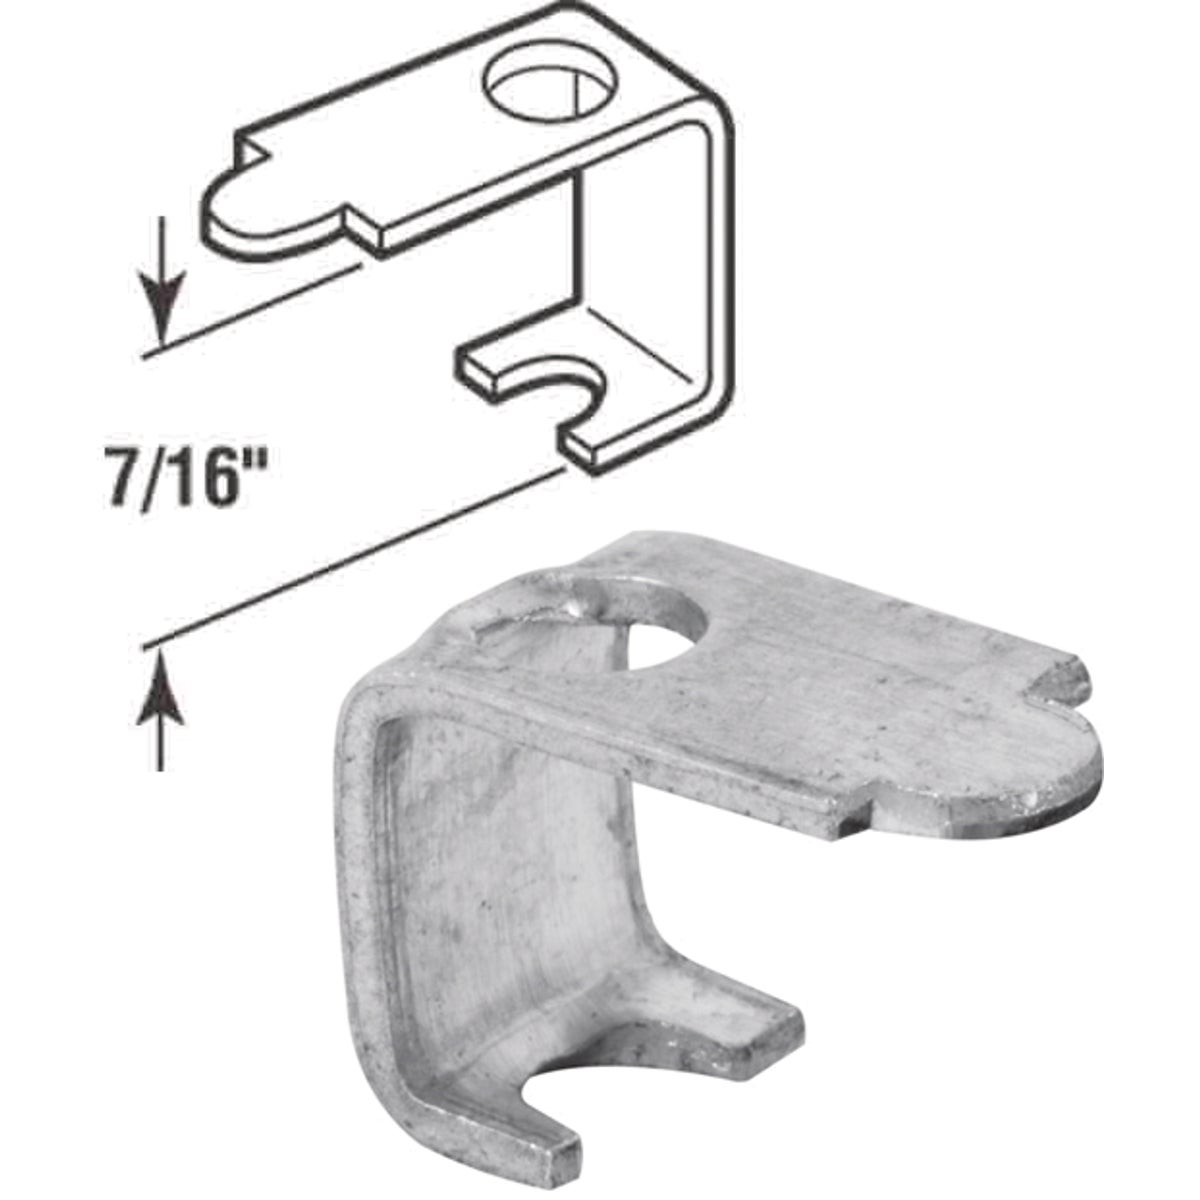 "7/16"" ALUM SCREEN CLIP - PL7746 by Prime Line Products"